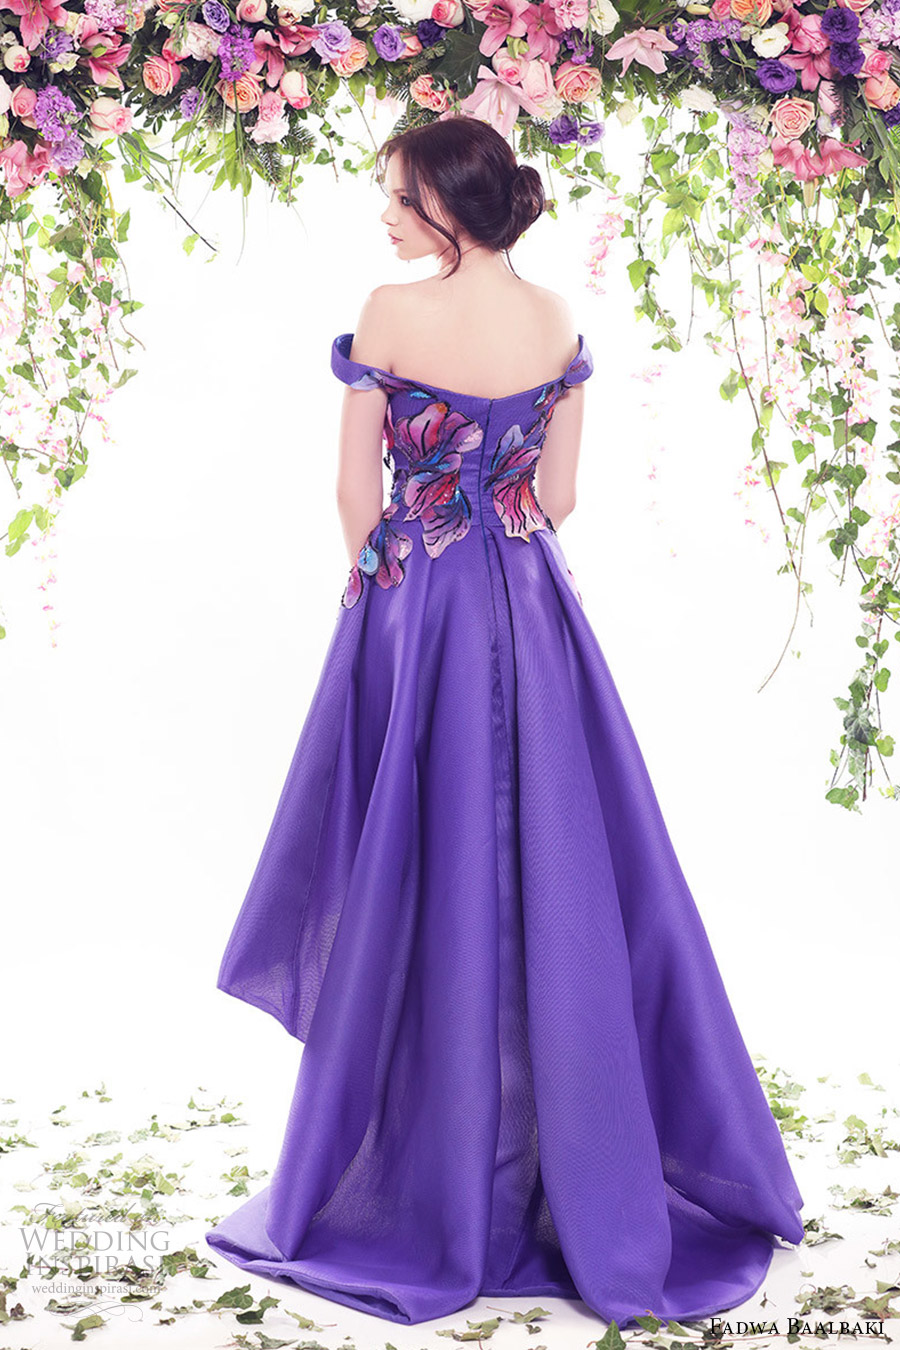 fadwa baalbaki spring 2016 couture off shoulder high low purple color floral evening cocktail dress bv